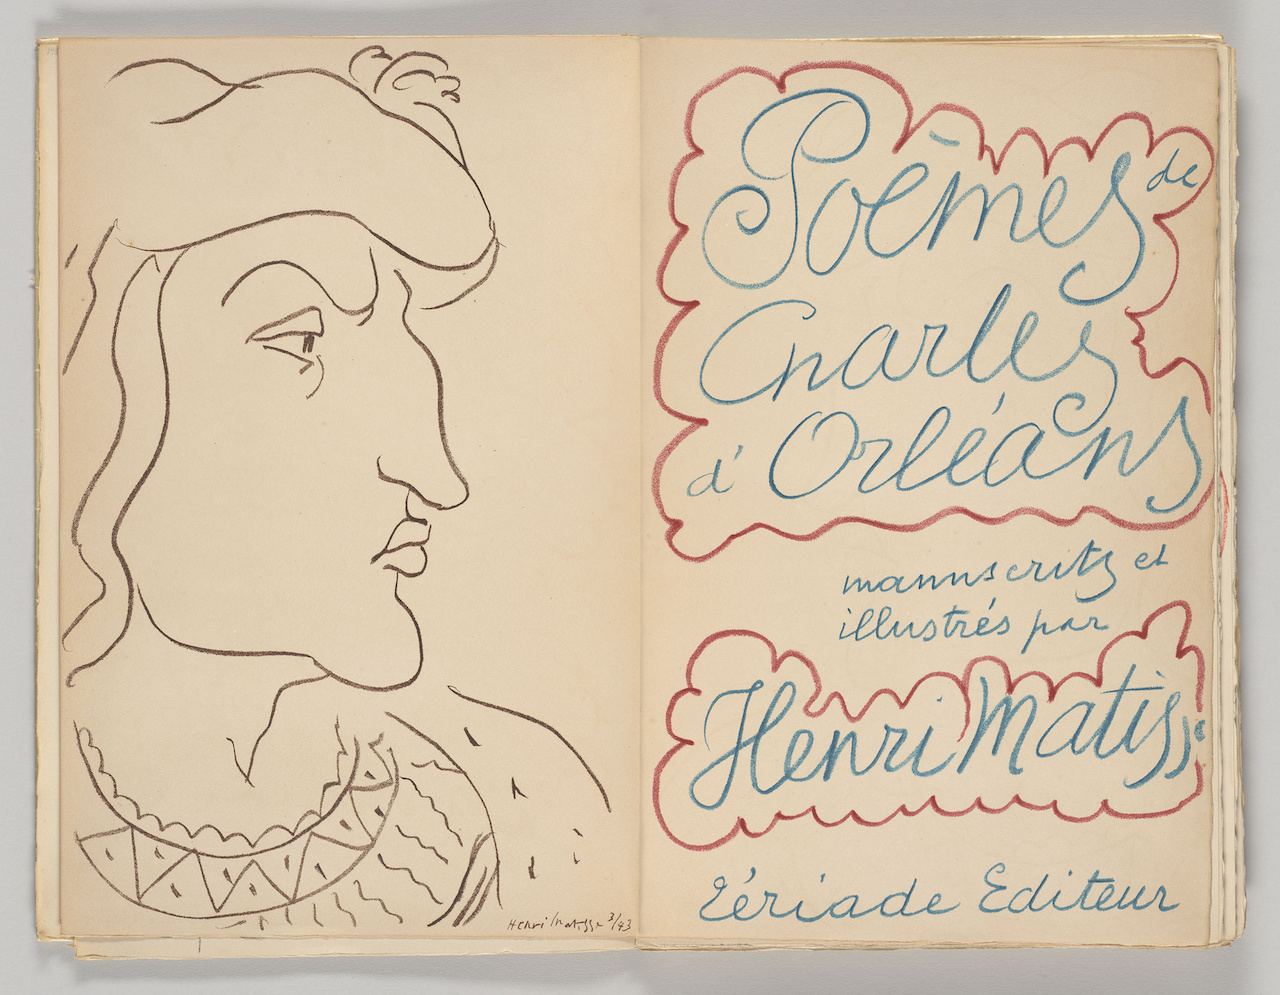 Henri Matisse, frontispiece and title page, 'Poèmes de Charles d'Orléans. Paris: Tériade Éditeur' (1950) (Frances and Michael Baylson Collection, The Morgan Library & Museum, © 2015 Succession H. Matisse / Artists Rights Society (ARS), New York, photography by Graham S. Haber, 2015)